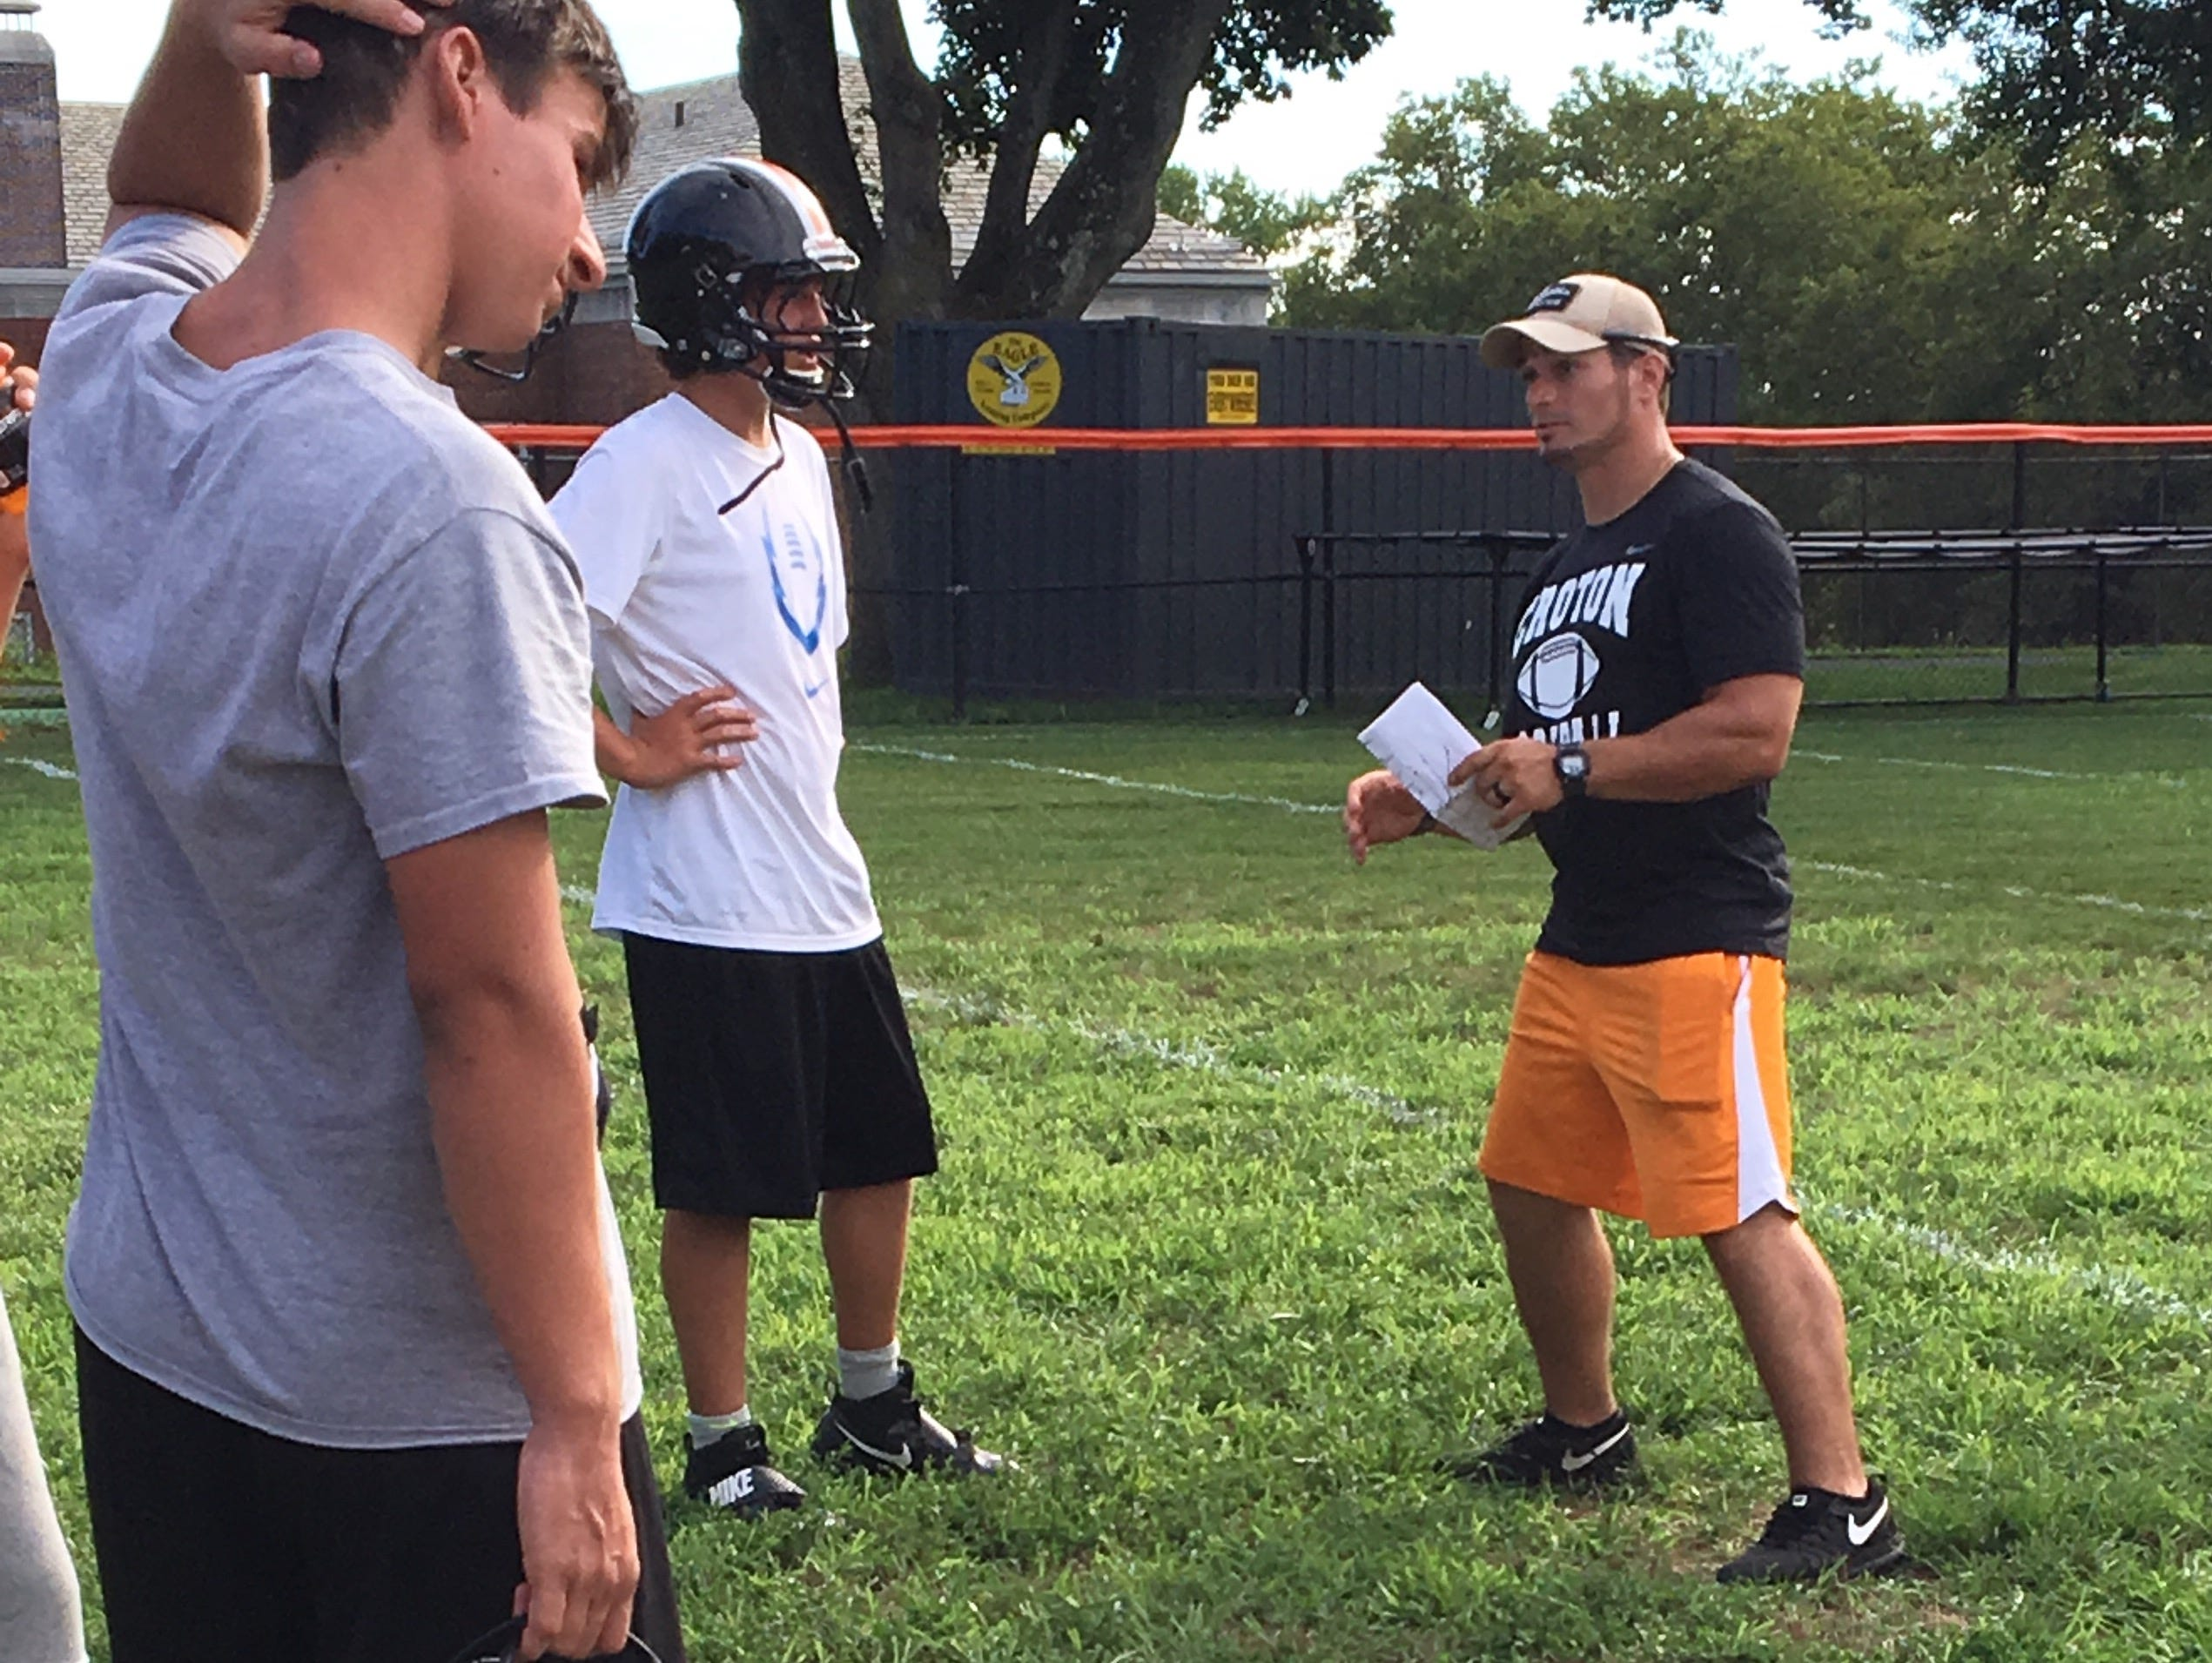 First-year coach Joe Streany talks to quarterback Toby Murphy during the first day of football practice at Croton-Harmon High School on Aug. 15, 2016.